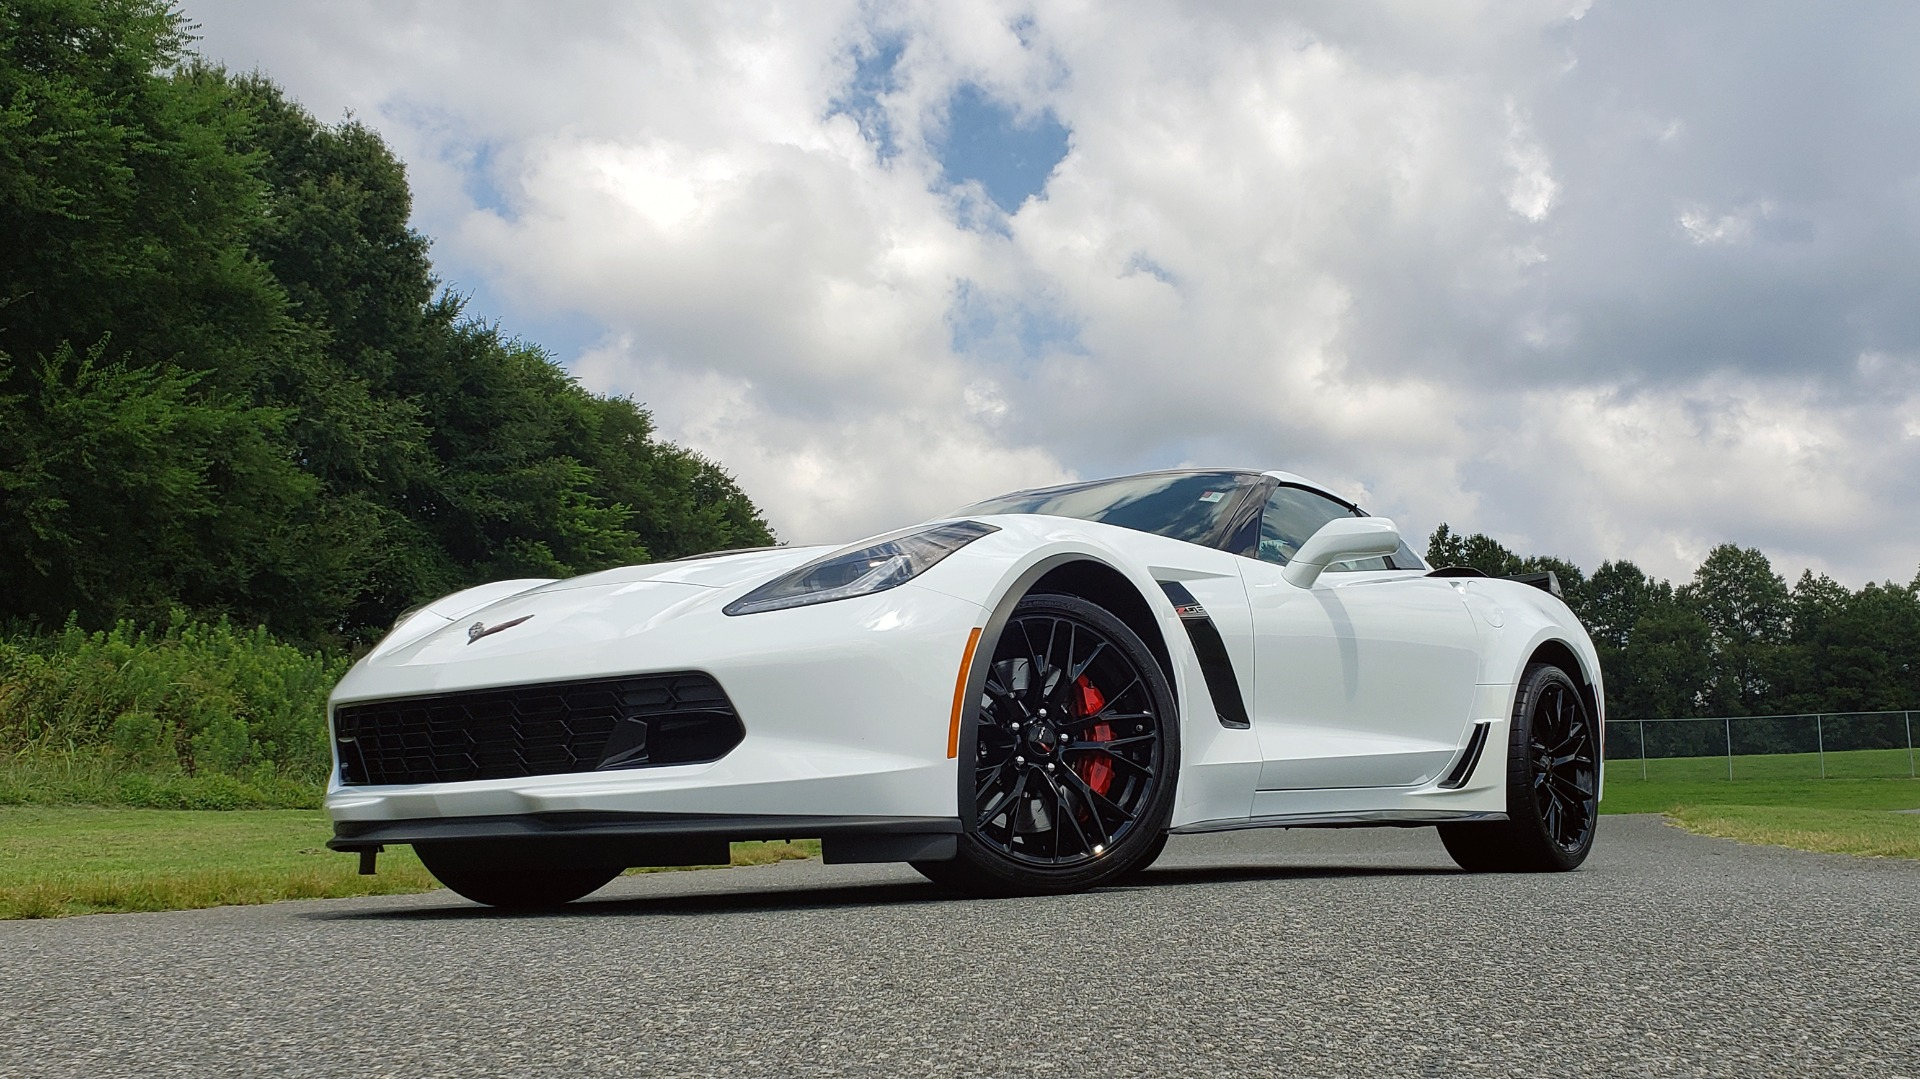 Used 2015 Chevrolet CORVETTE Z06 3LZ / 6.2L SUPERCHARGED 650HP / NAV / BOSE / REARVIEW for sale Sold at Formula Imports in Charlotte NC 28227 2